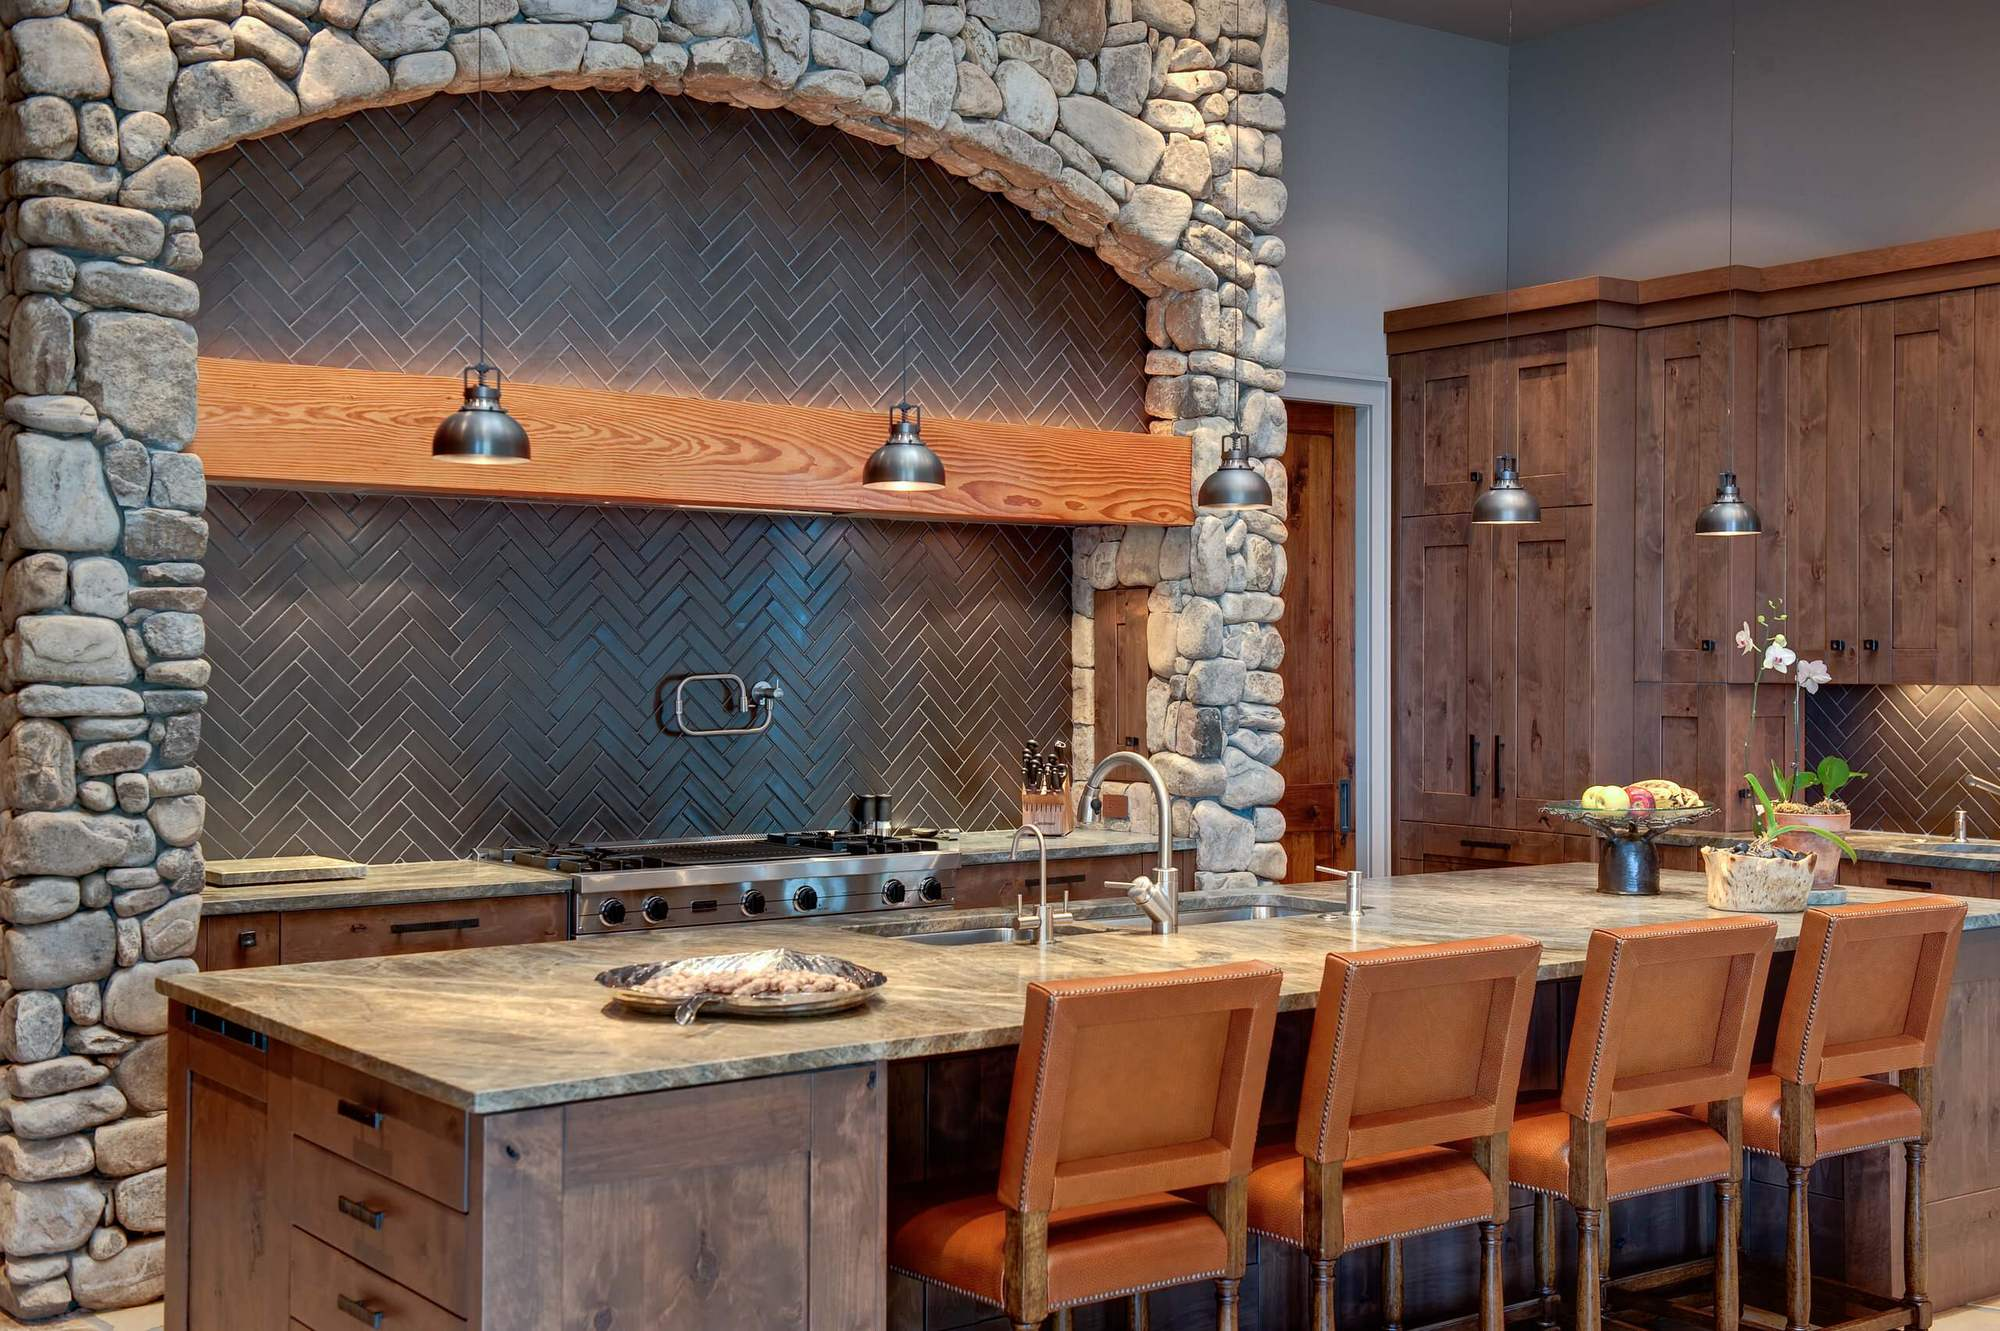 Stone Kitchen Interior Decoration Ideas. Wood and rock organic symbiosis in the simple design